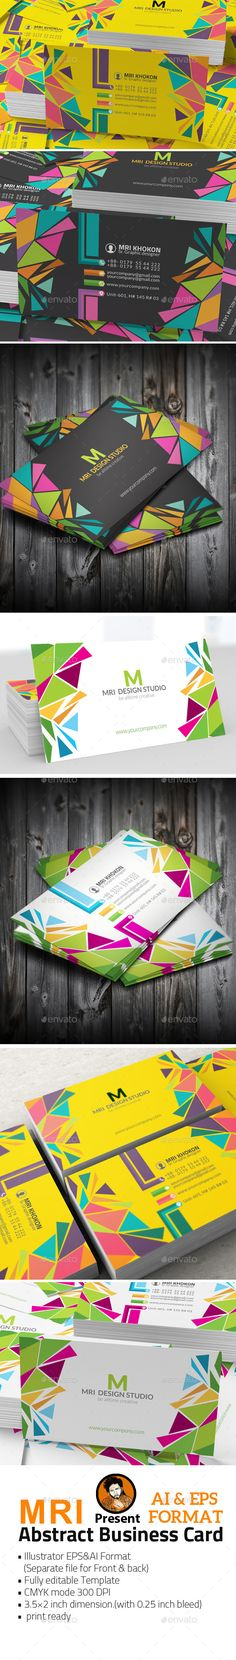 Abstract Business Card - Business Card Template Vector EPS, Vector AI. Download here: http://graphicriver.net/item/abstract-business-card/11935063?s_rank=1781&ref=yinkira